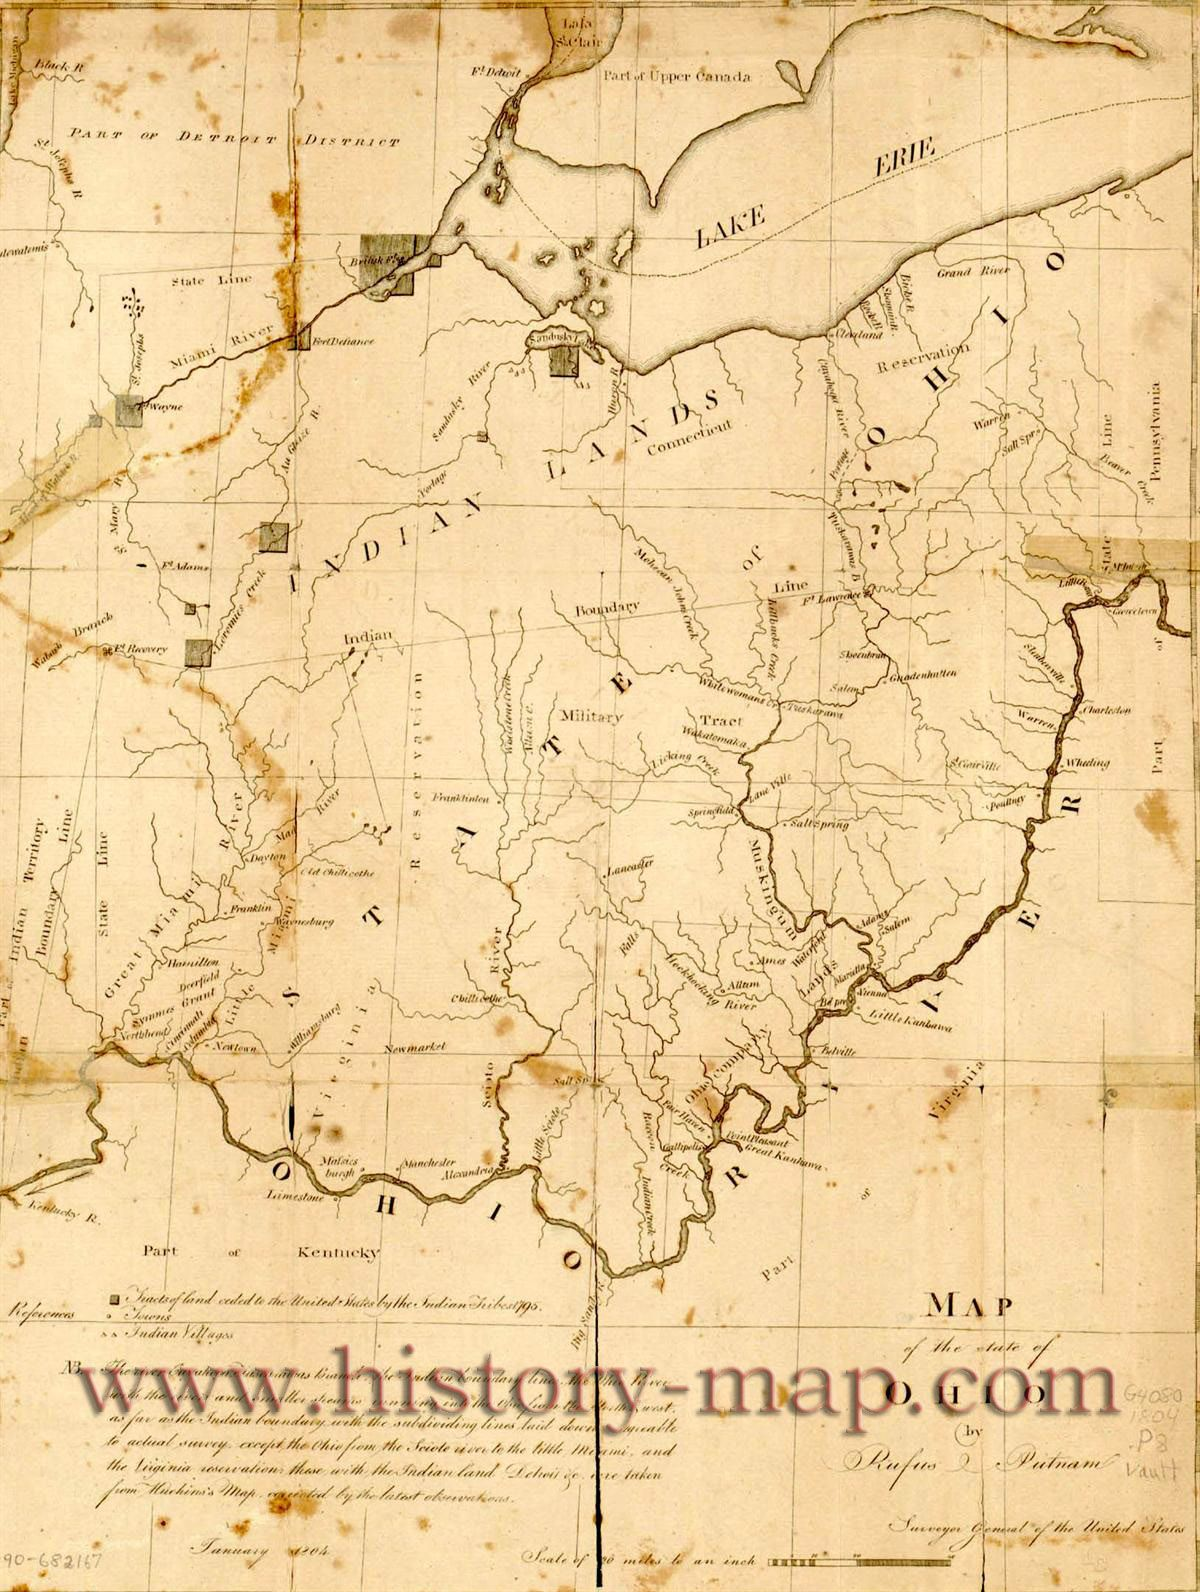 Ohio In Early S Living Room Pinterest Ohio Genealogy - Map usa early 1800s